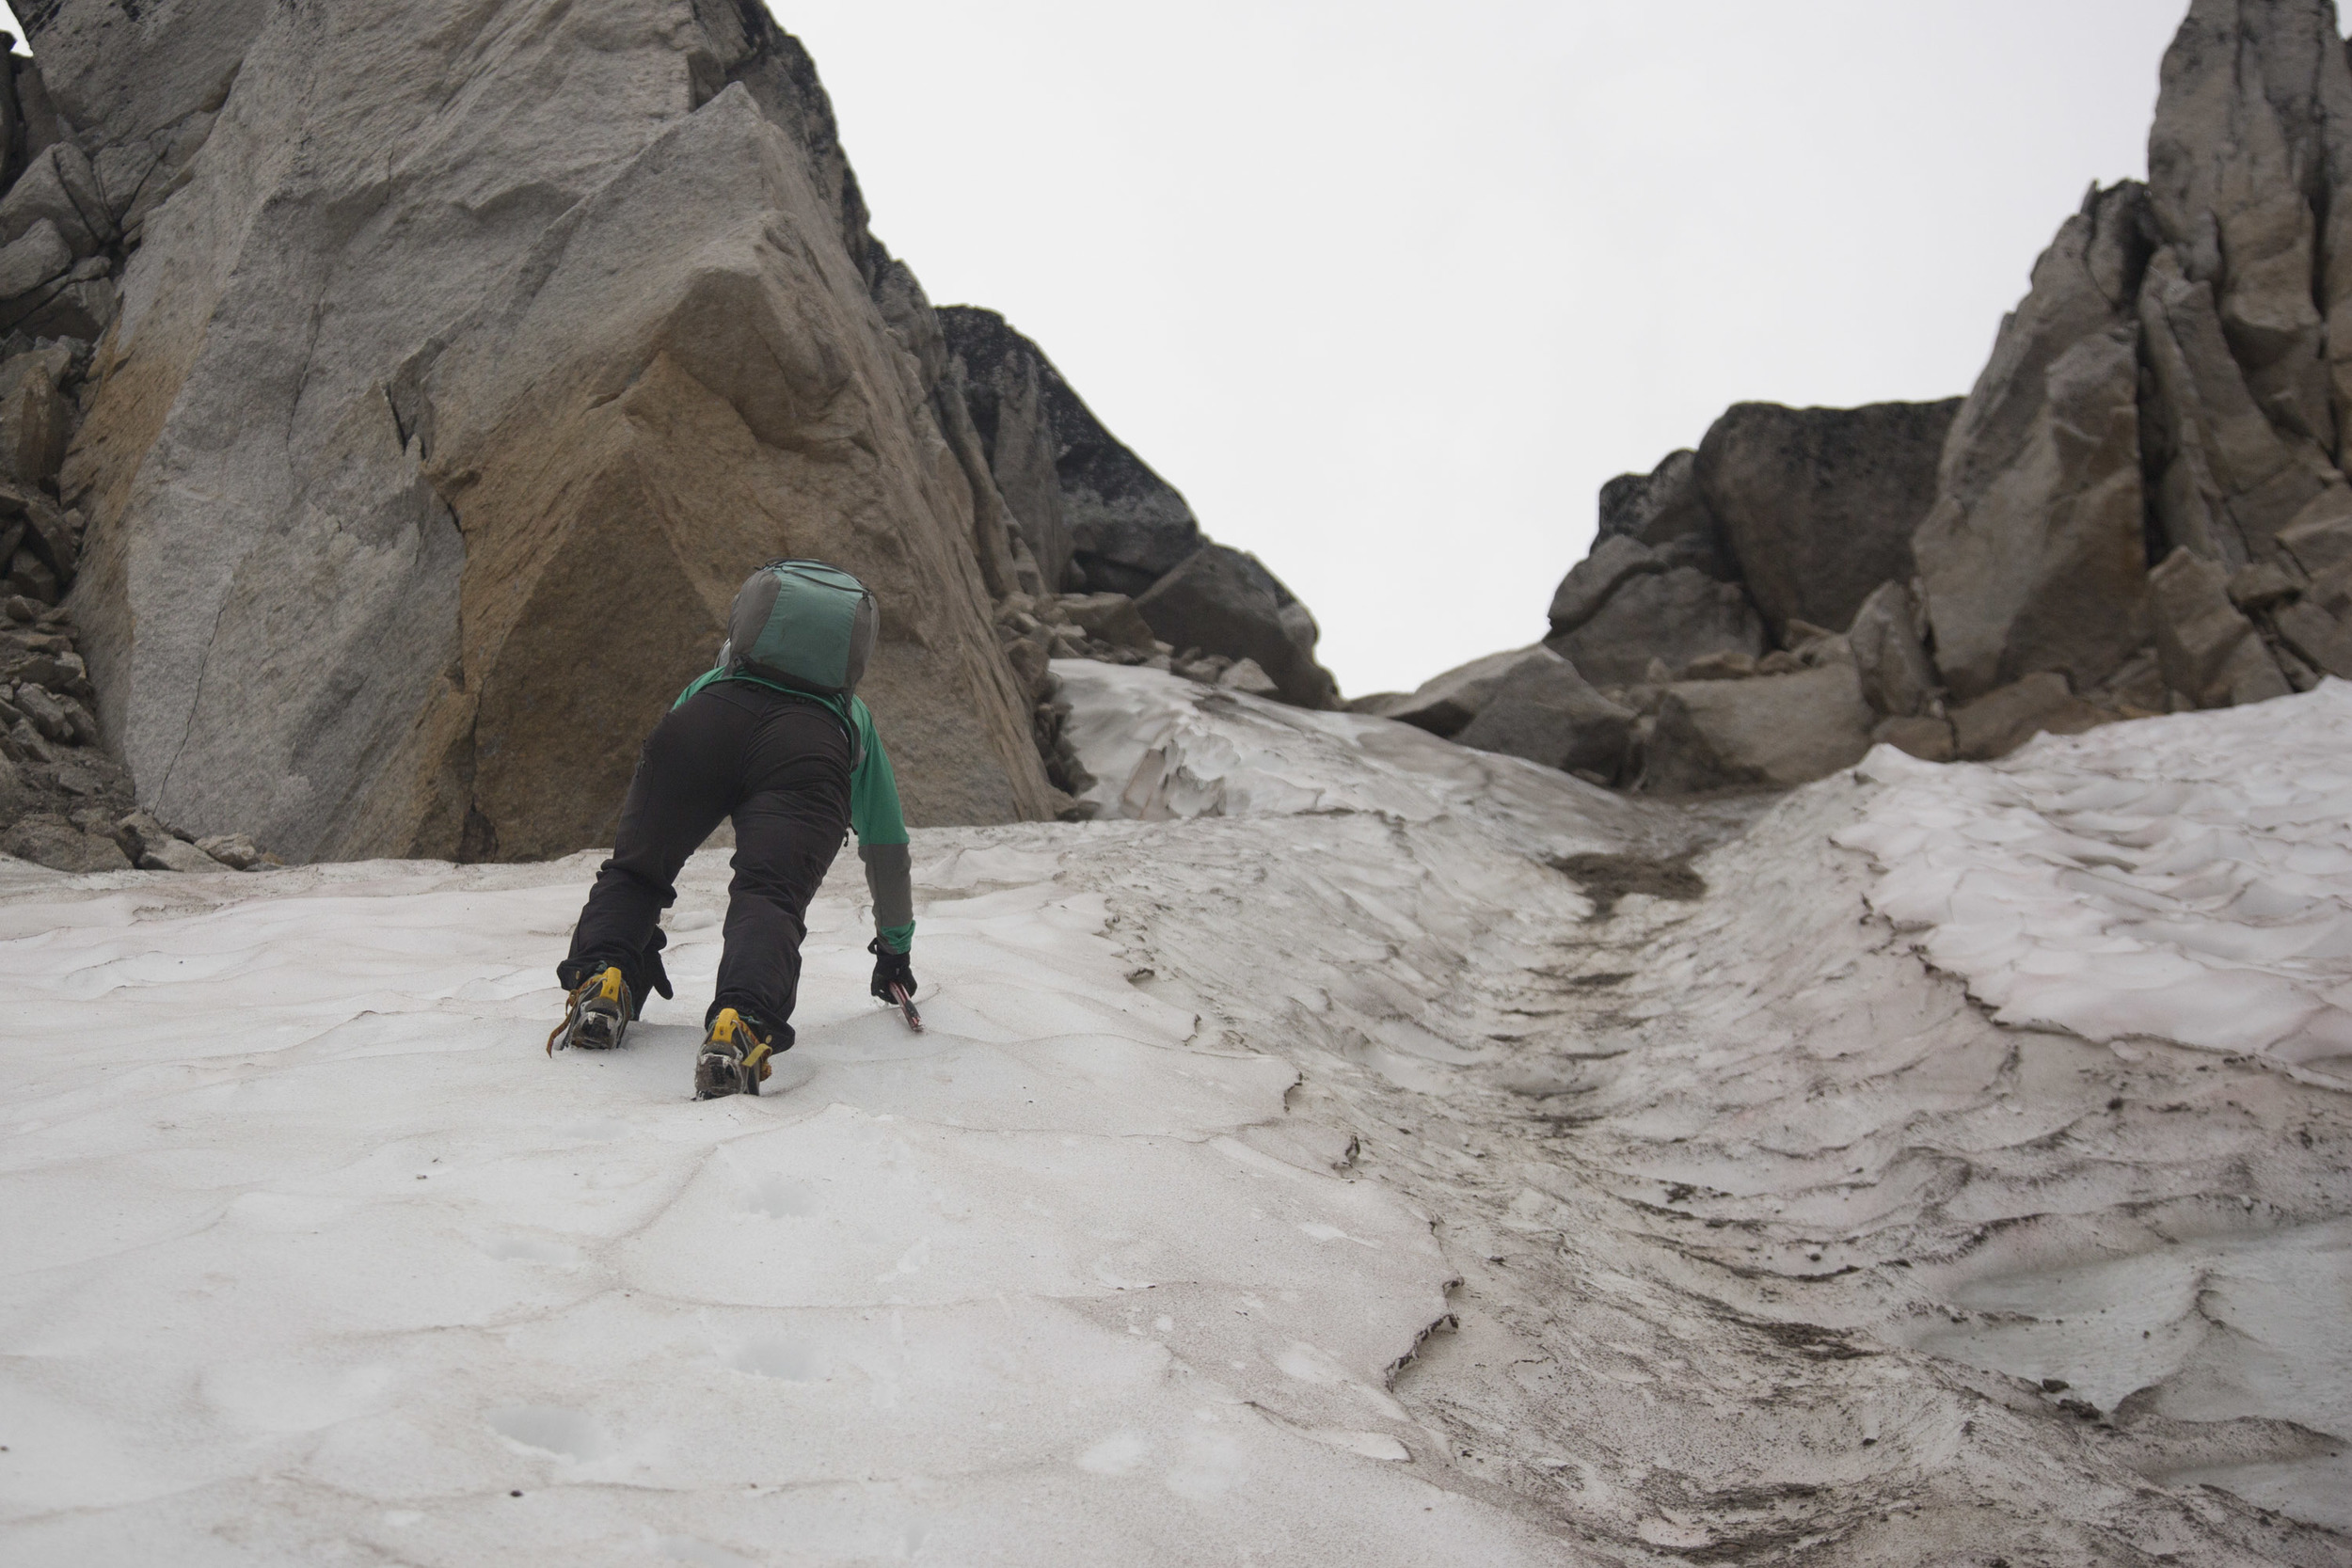 Climbing up to the Bugaboo-Snowpatch col.